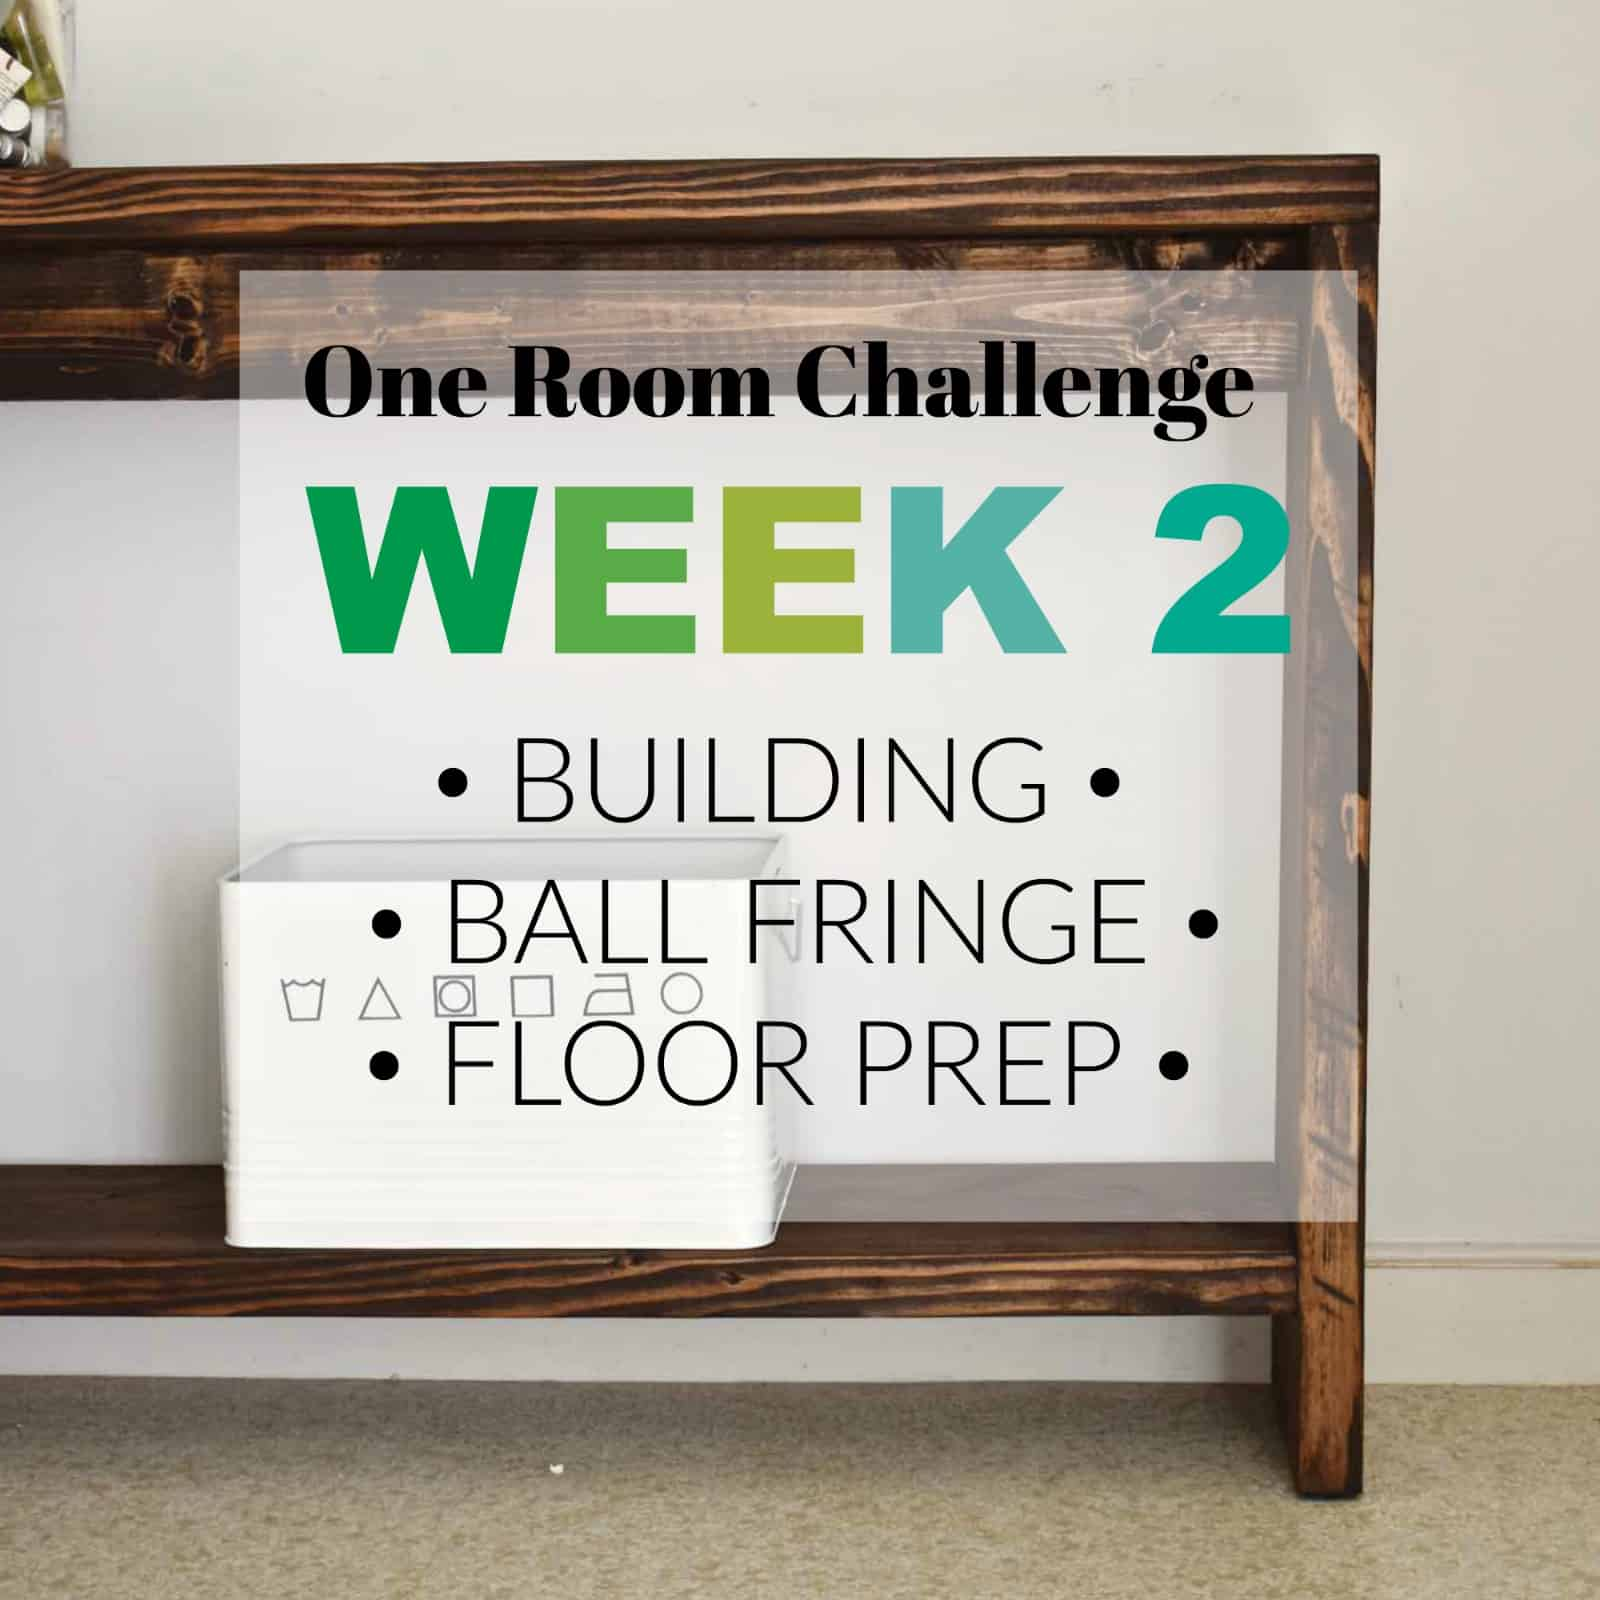 one room challenge week 2 title